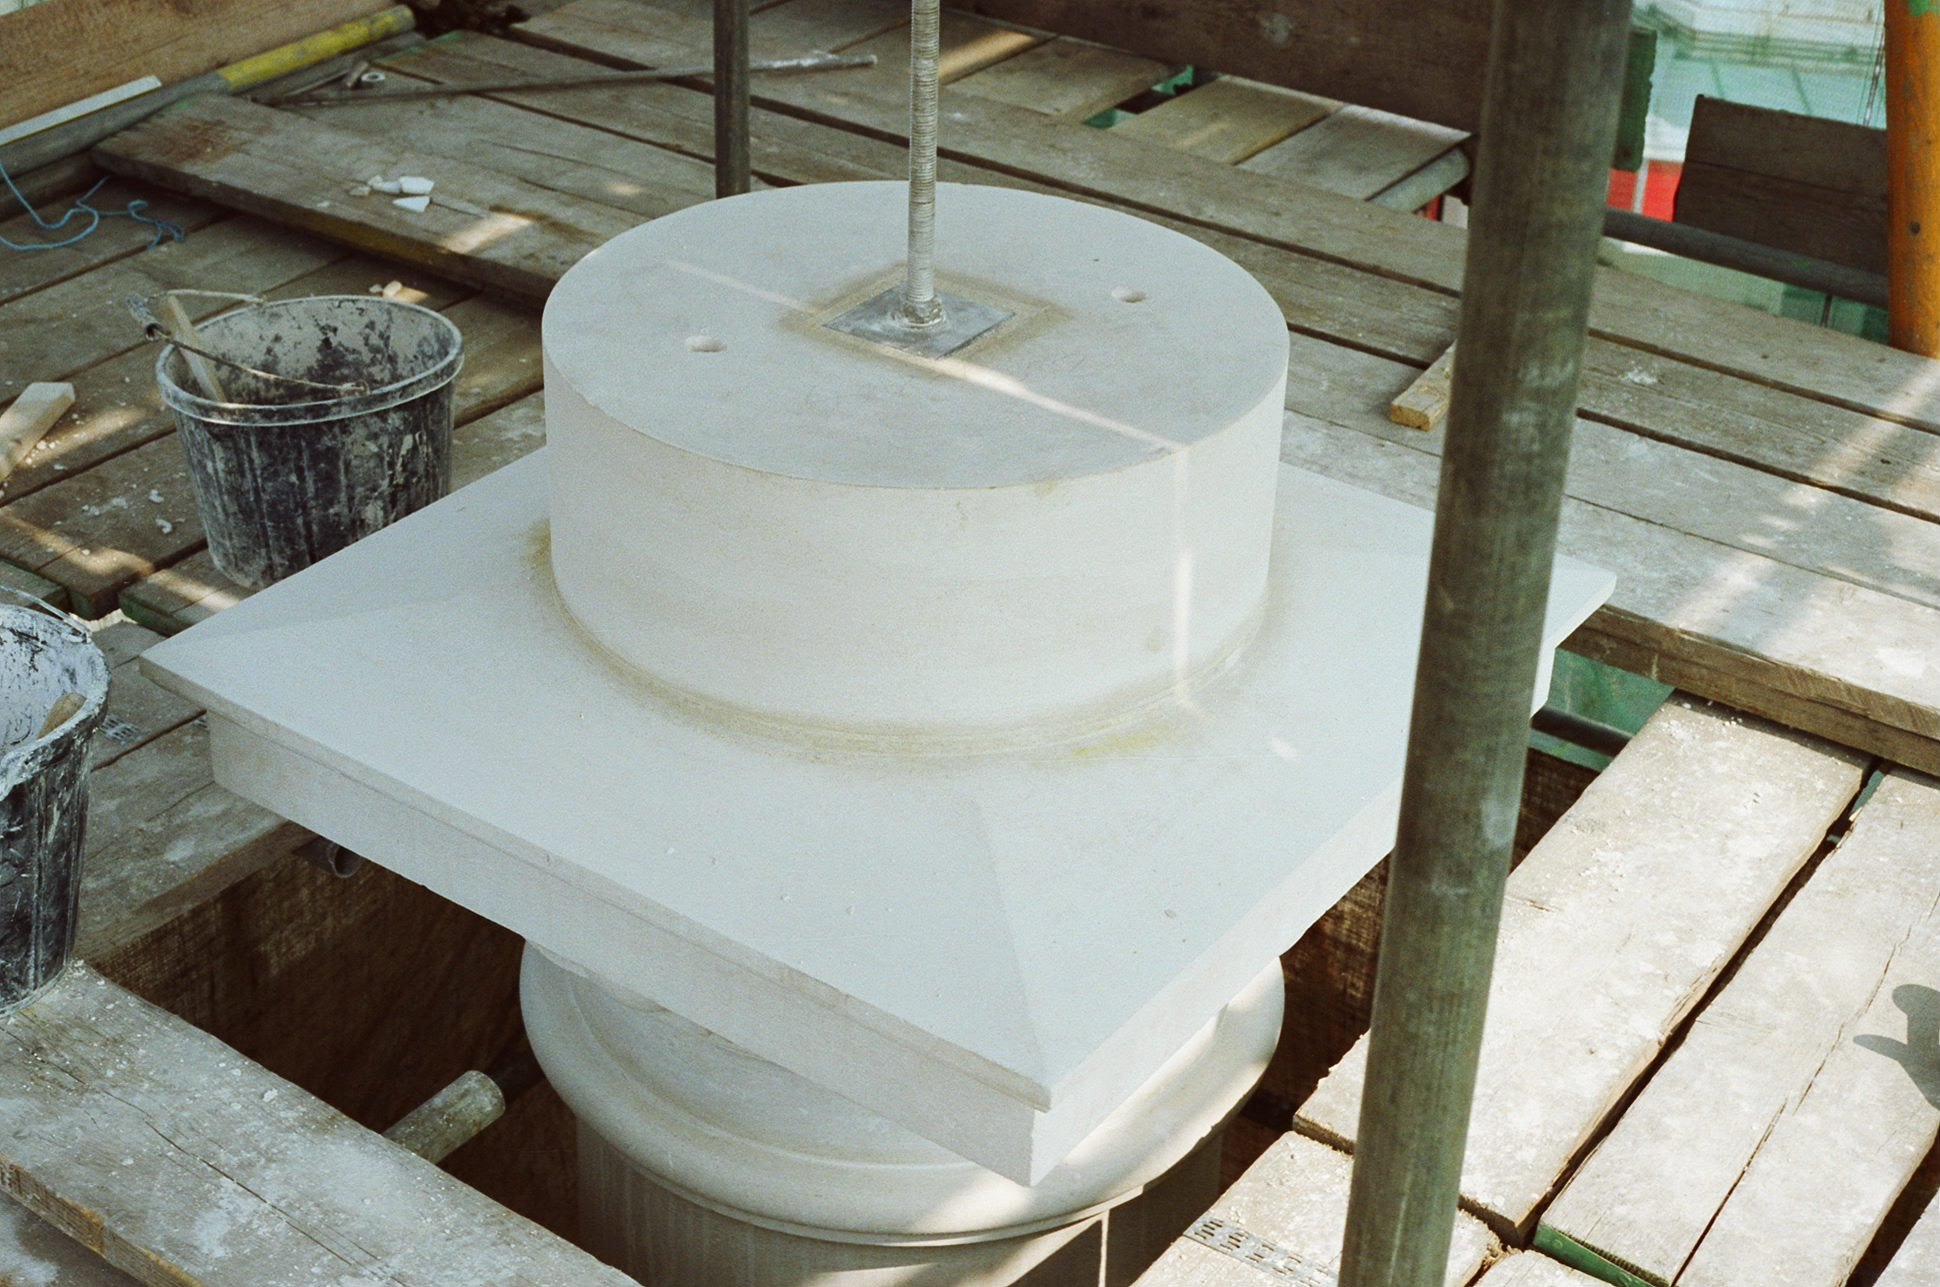 The shaft stone in position: note the central tension rod.